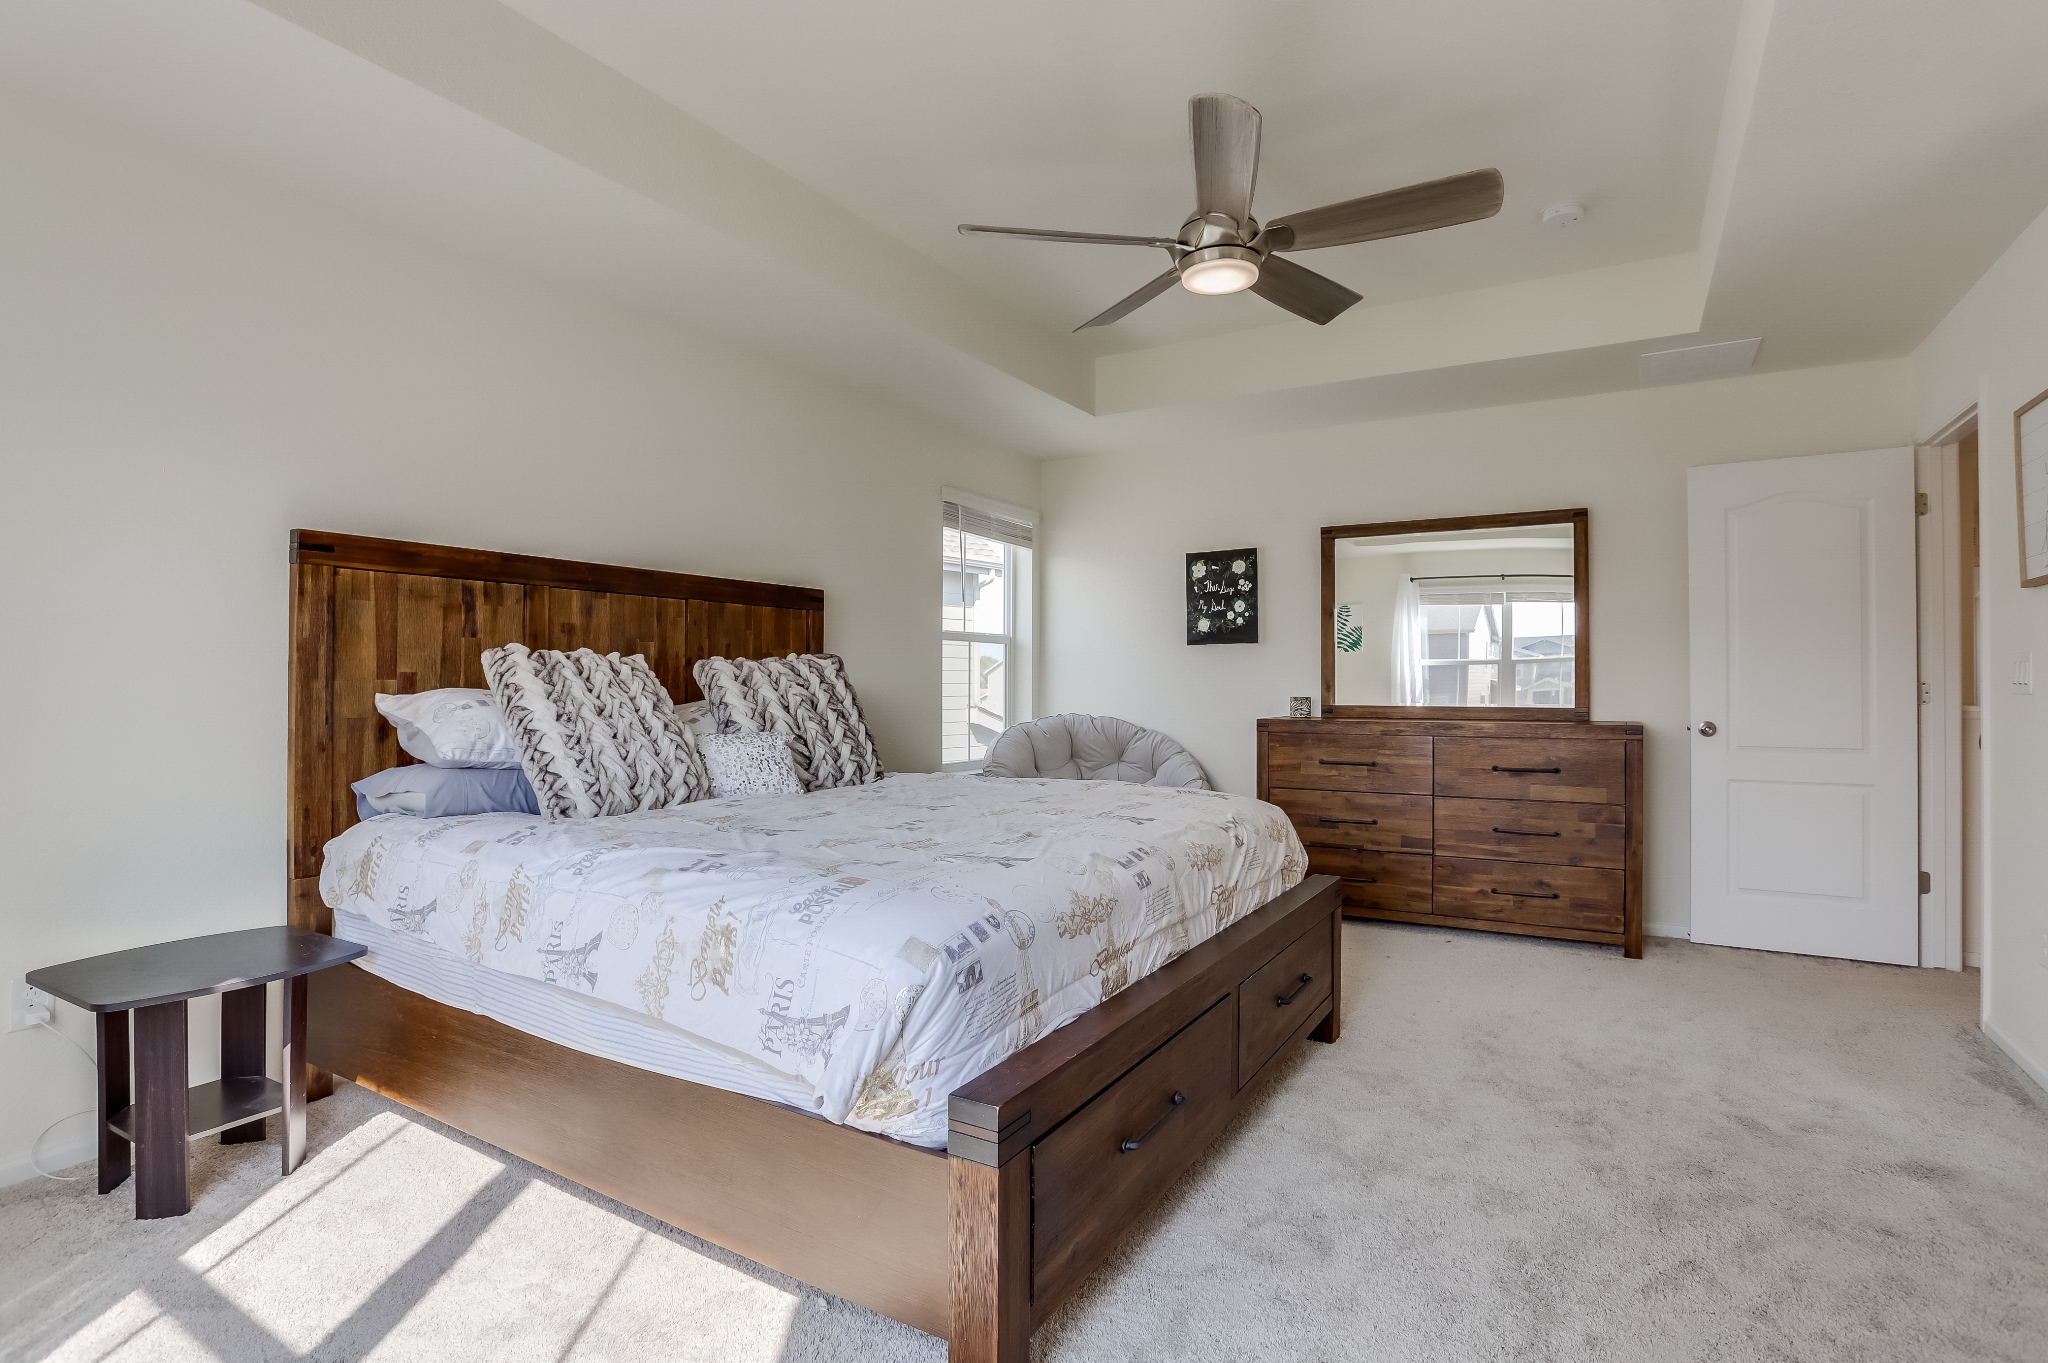 REAL ESTATE LISTING: 12813 Clearview St Firestone Master Bedroom